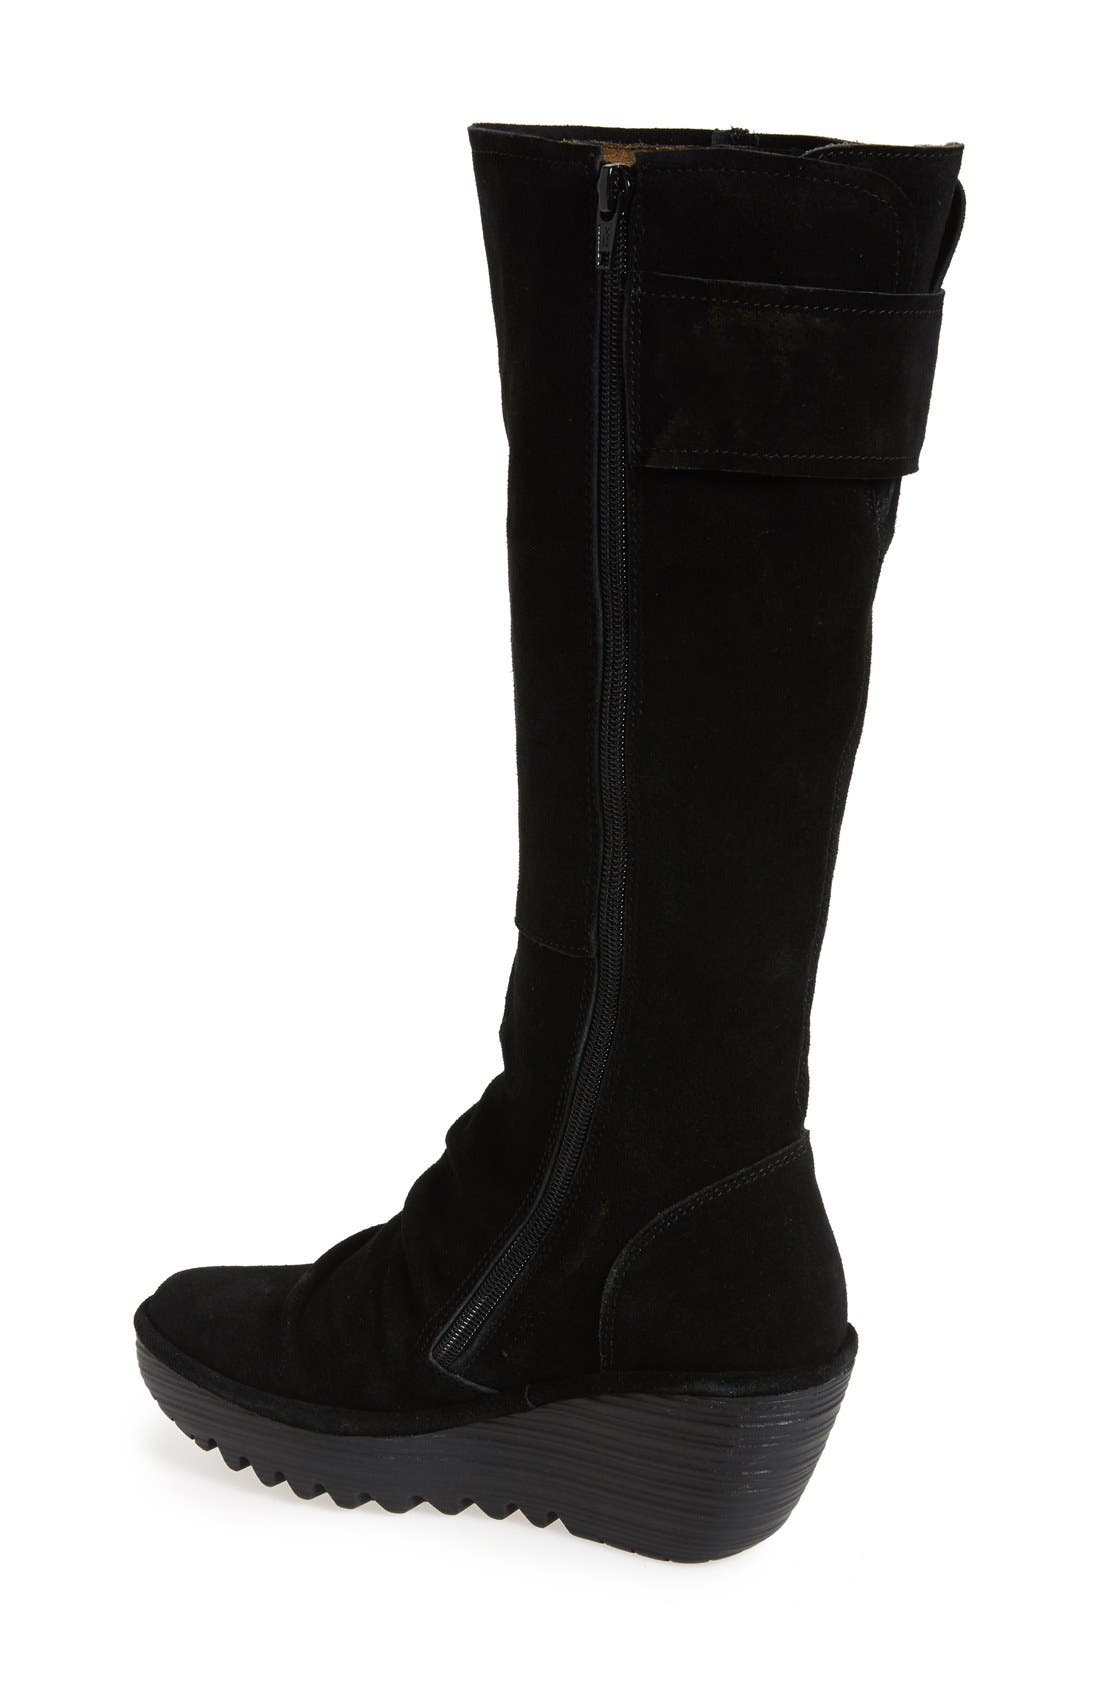 'Yulo' Knee High Wedge Platform Boot,                             Alternate thumbnail 2, color,                             003